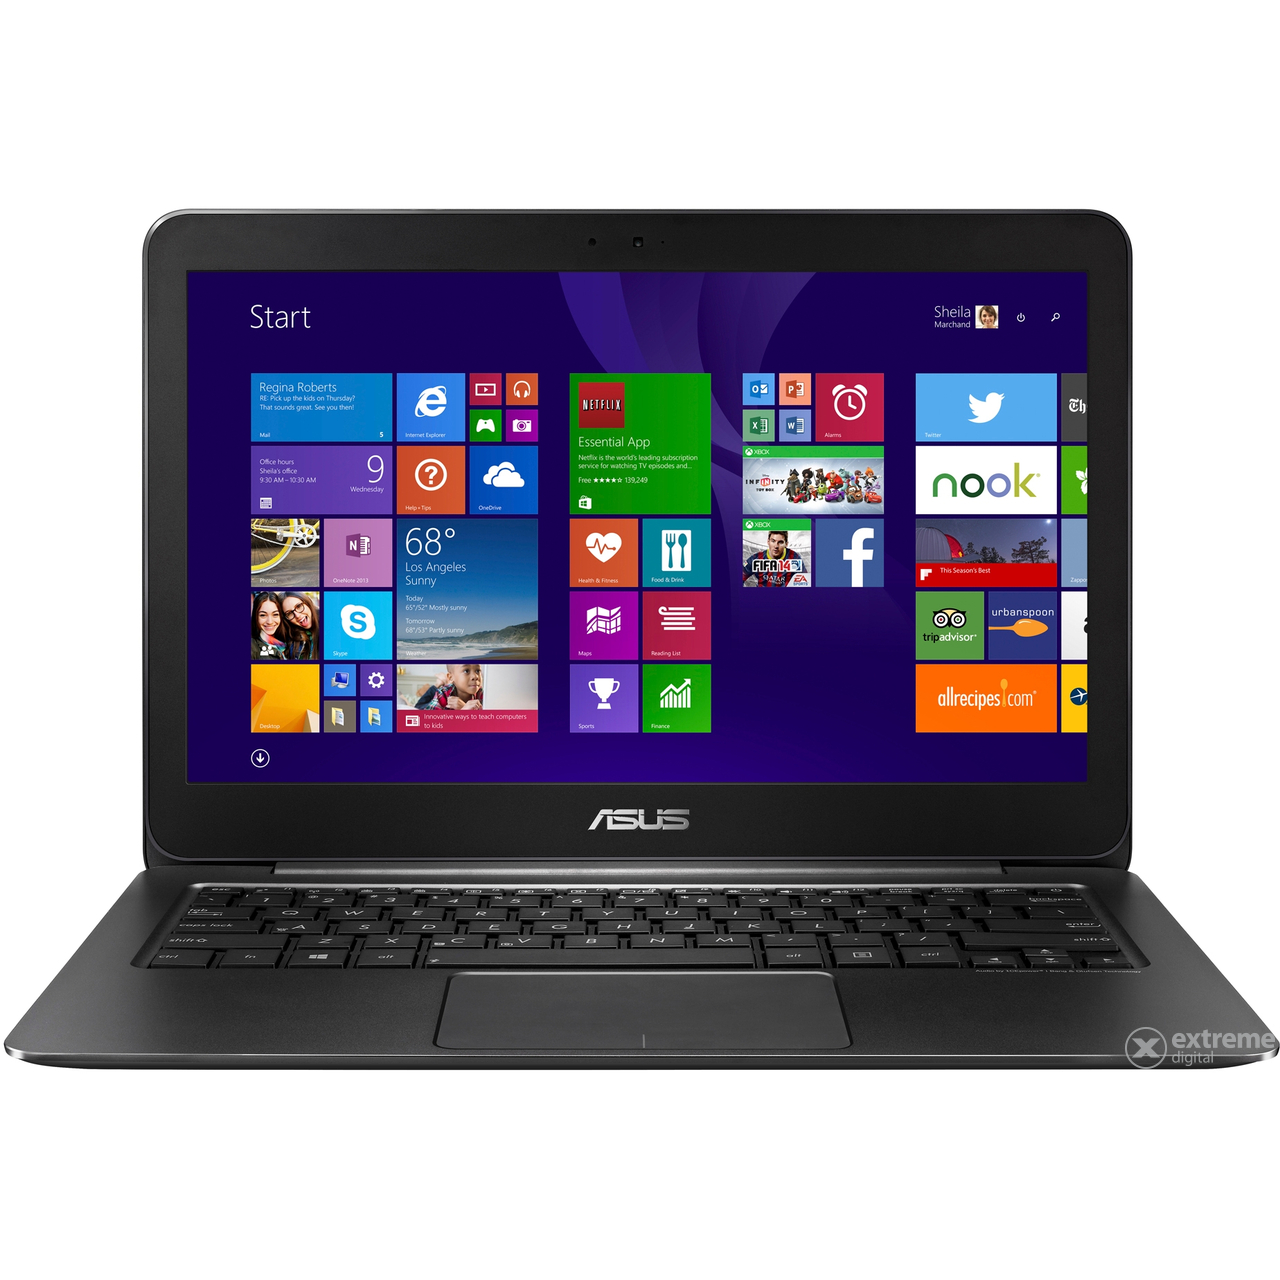 asus-zenbook-ux305la-fb019t-notebook-windows-10-fekete_fe3873da.jpg